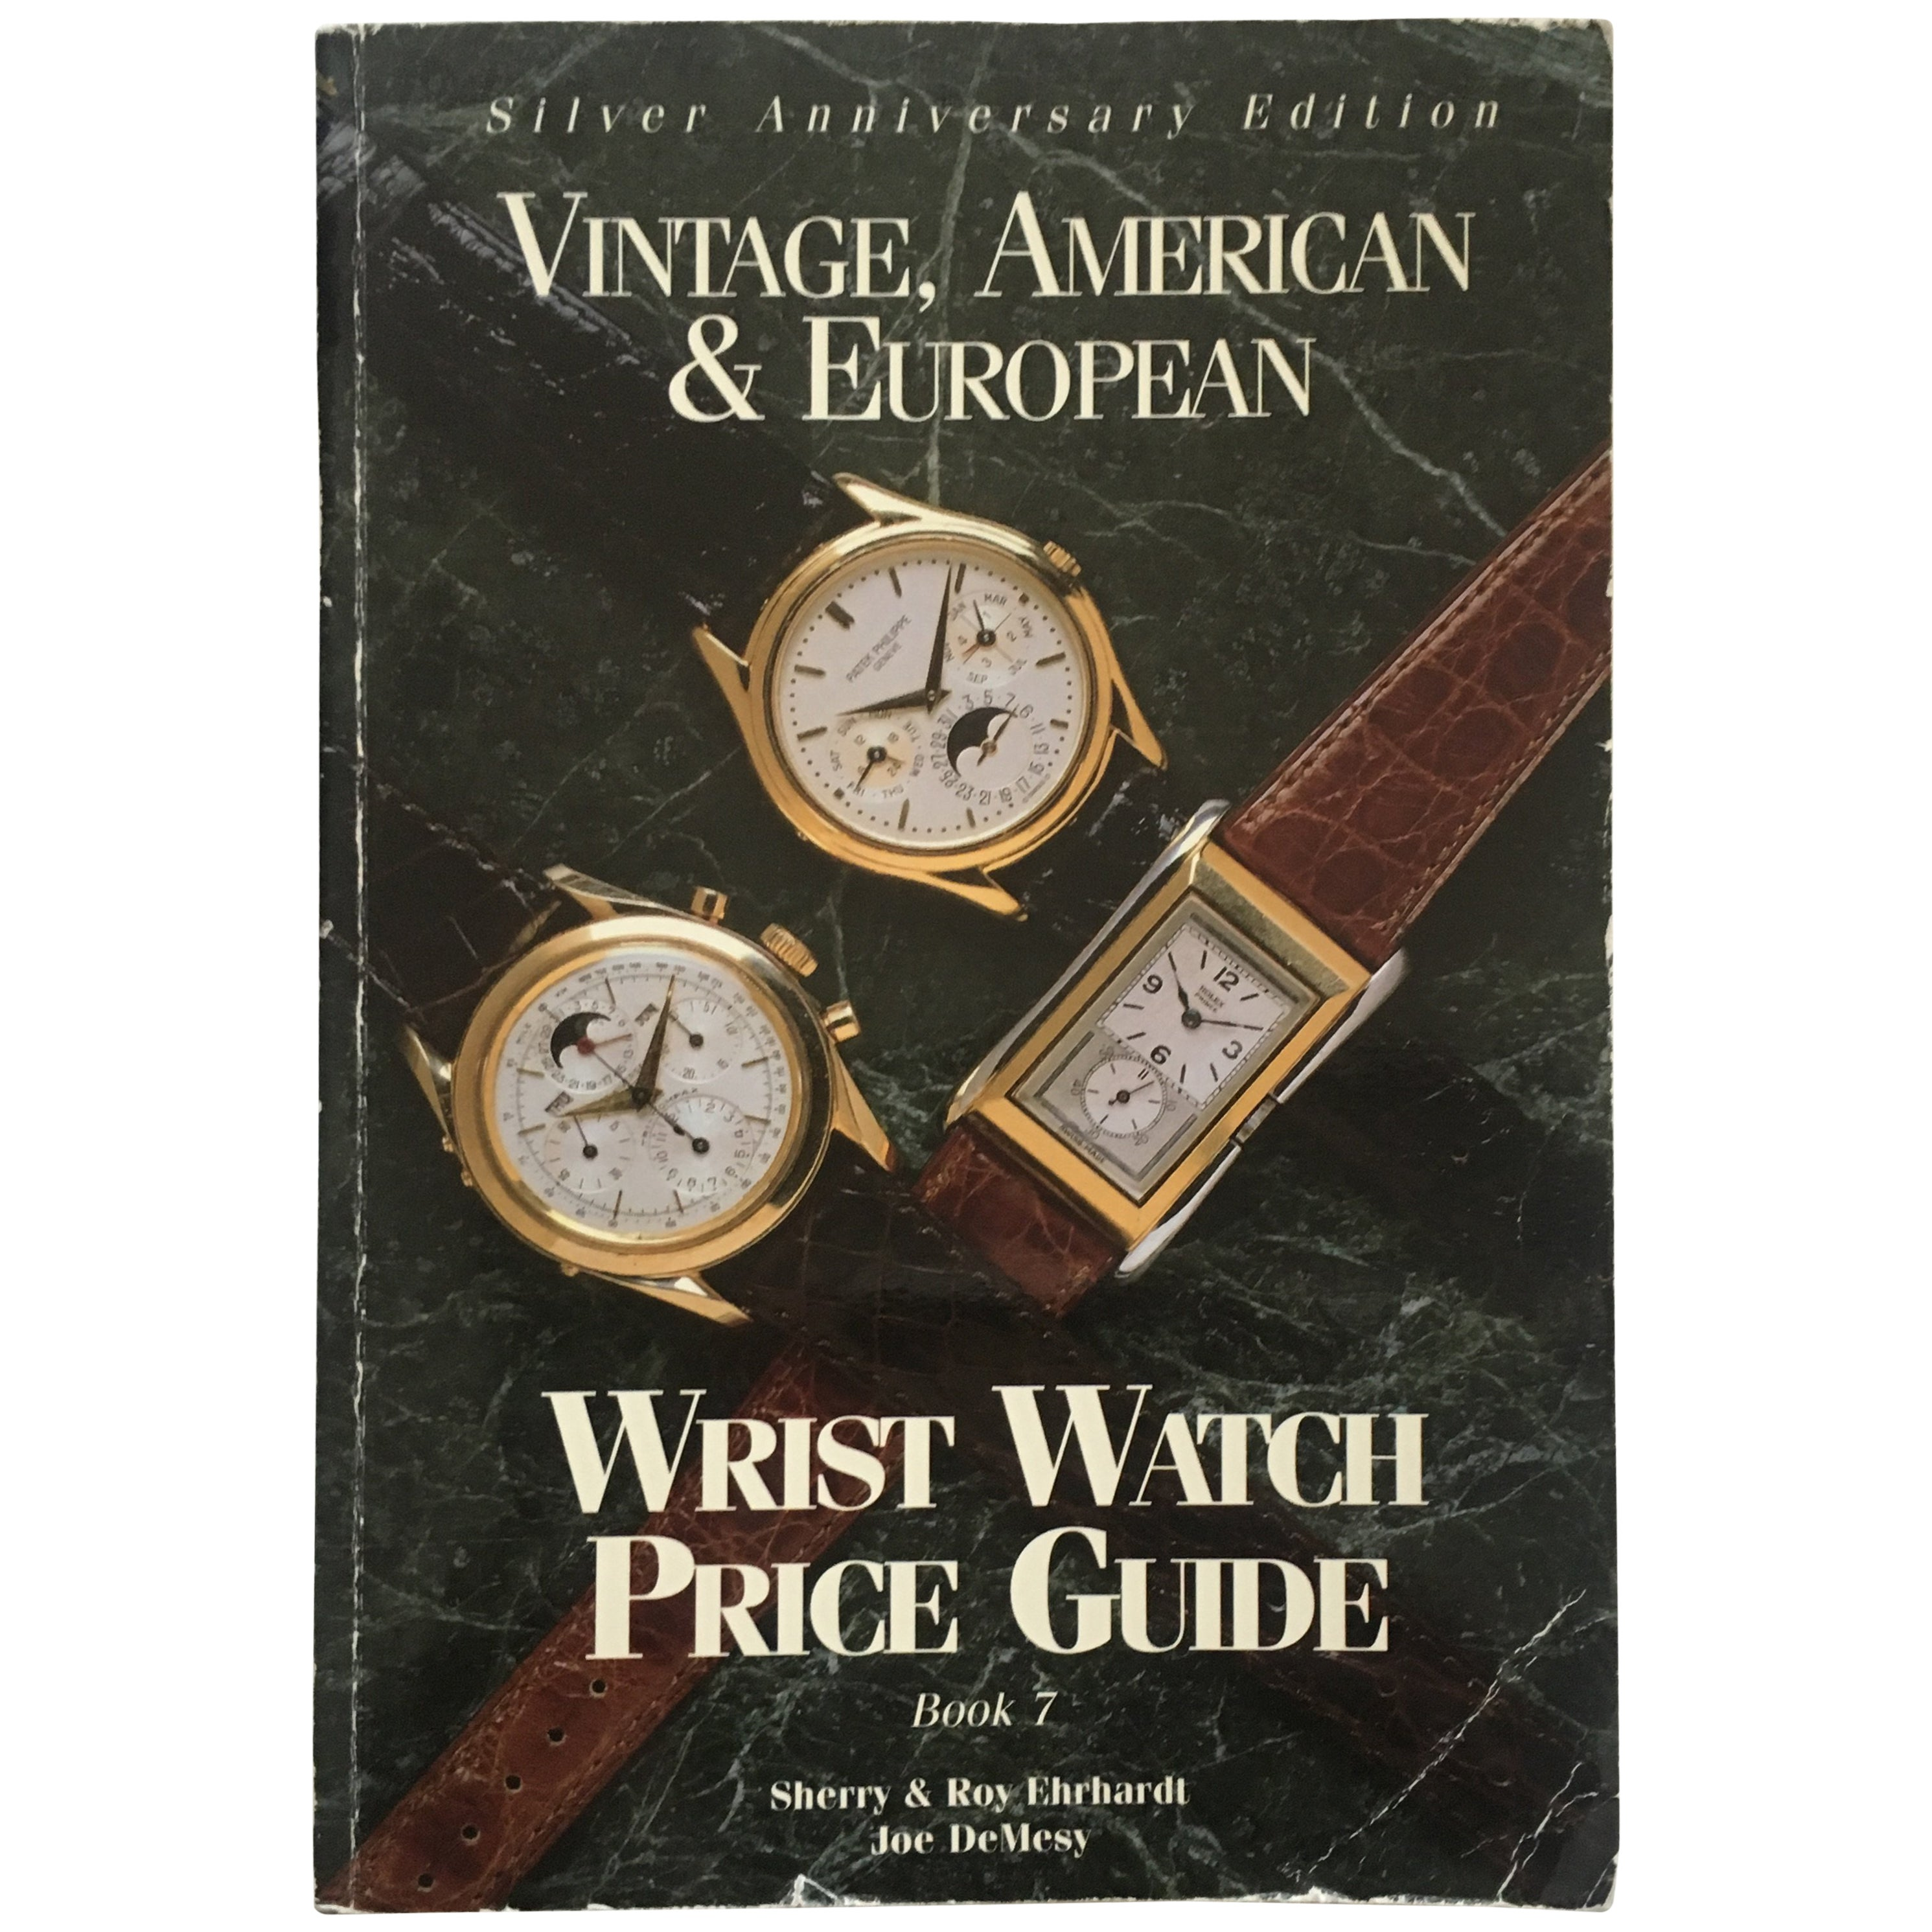 Vintage American & European Silver Anniversary Wristwatch Price Guide Published